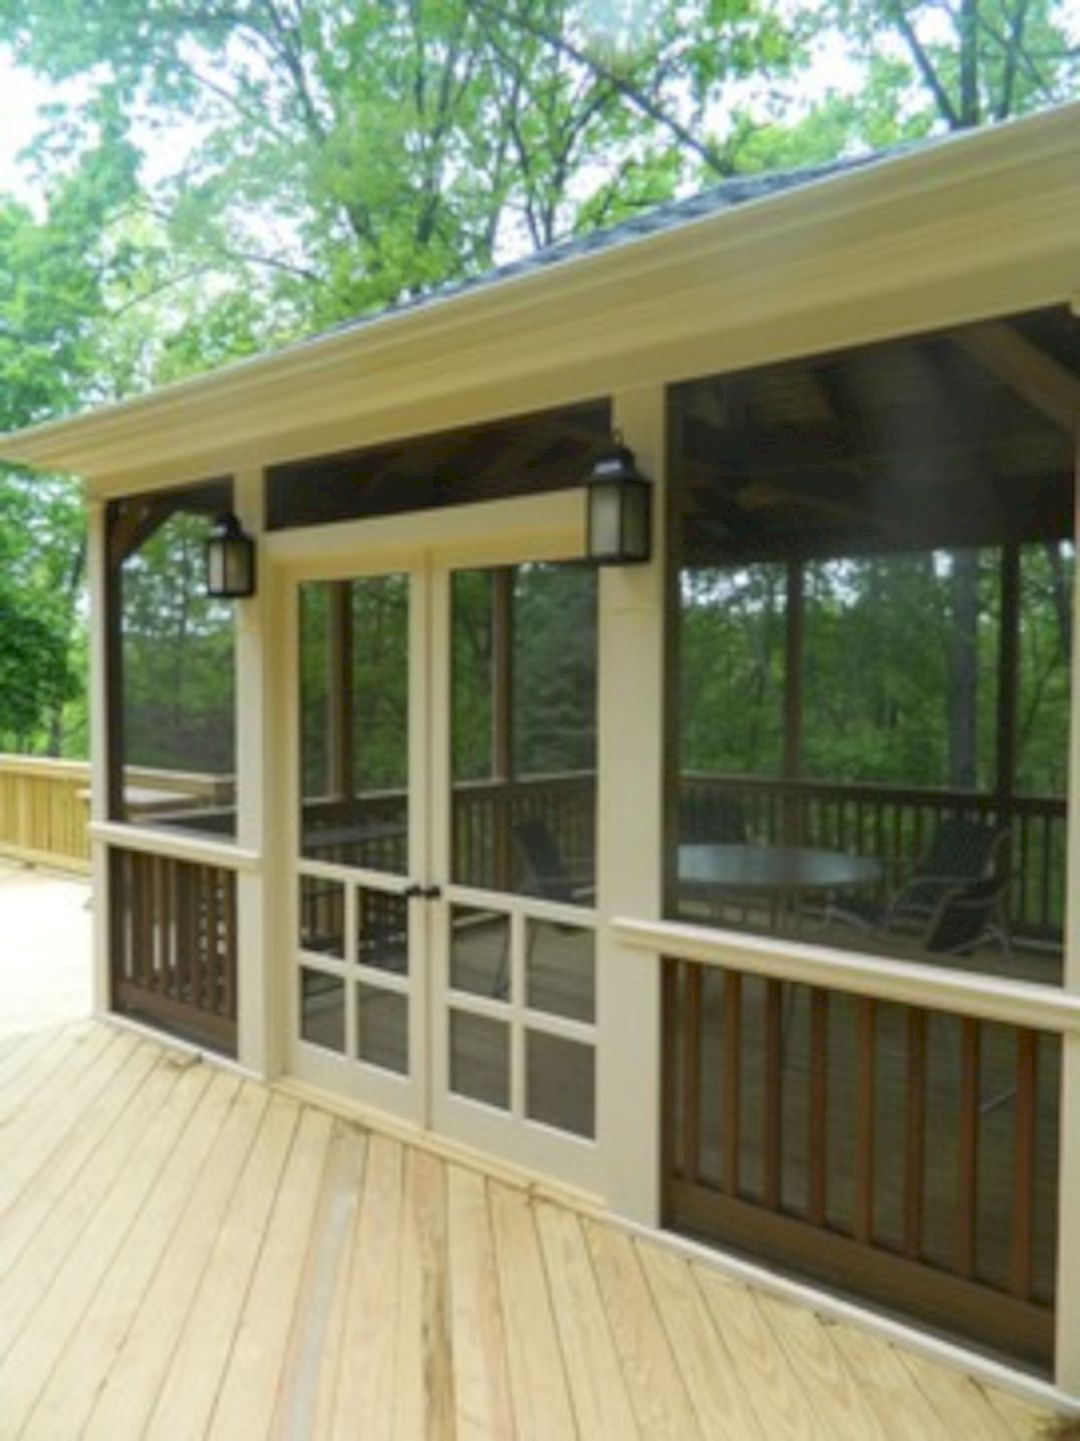 8 ways to have more appealing screened porch deck porch decking and screened porches Screened porch plans designs